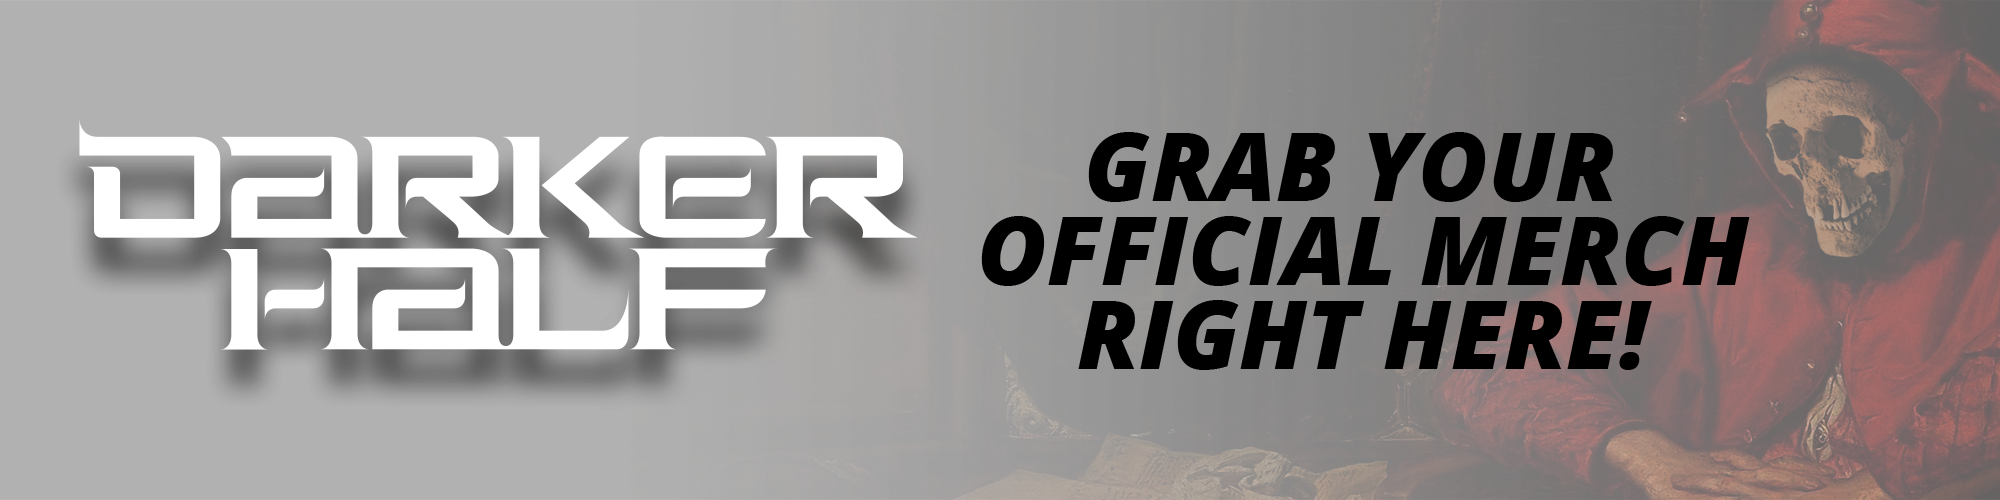 Darker Half Categorie Header